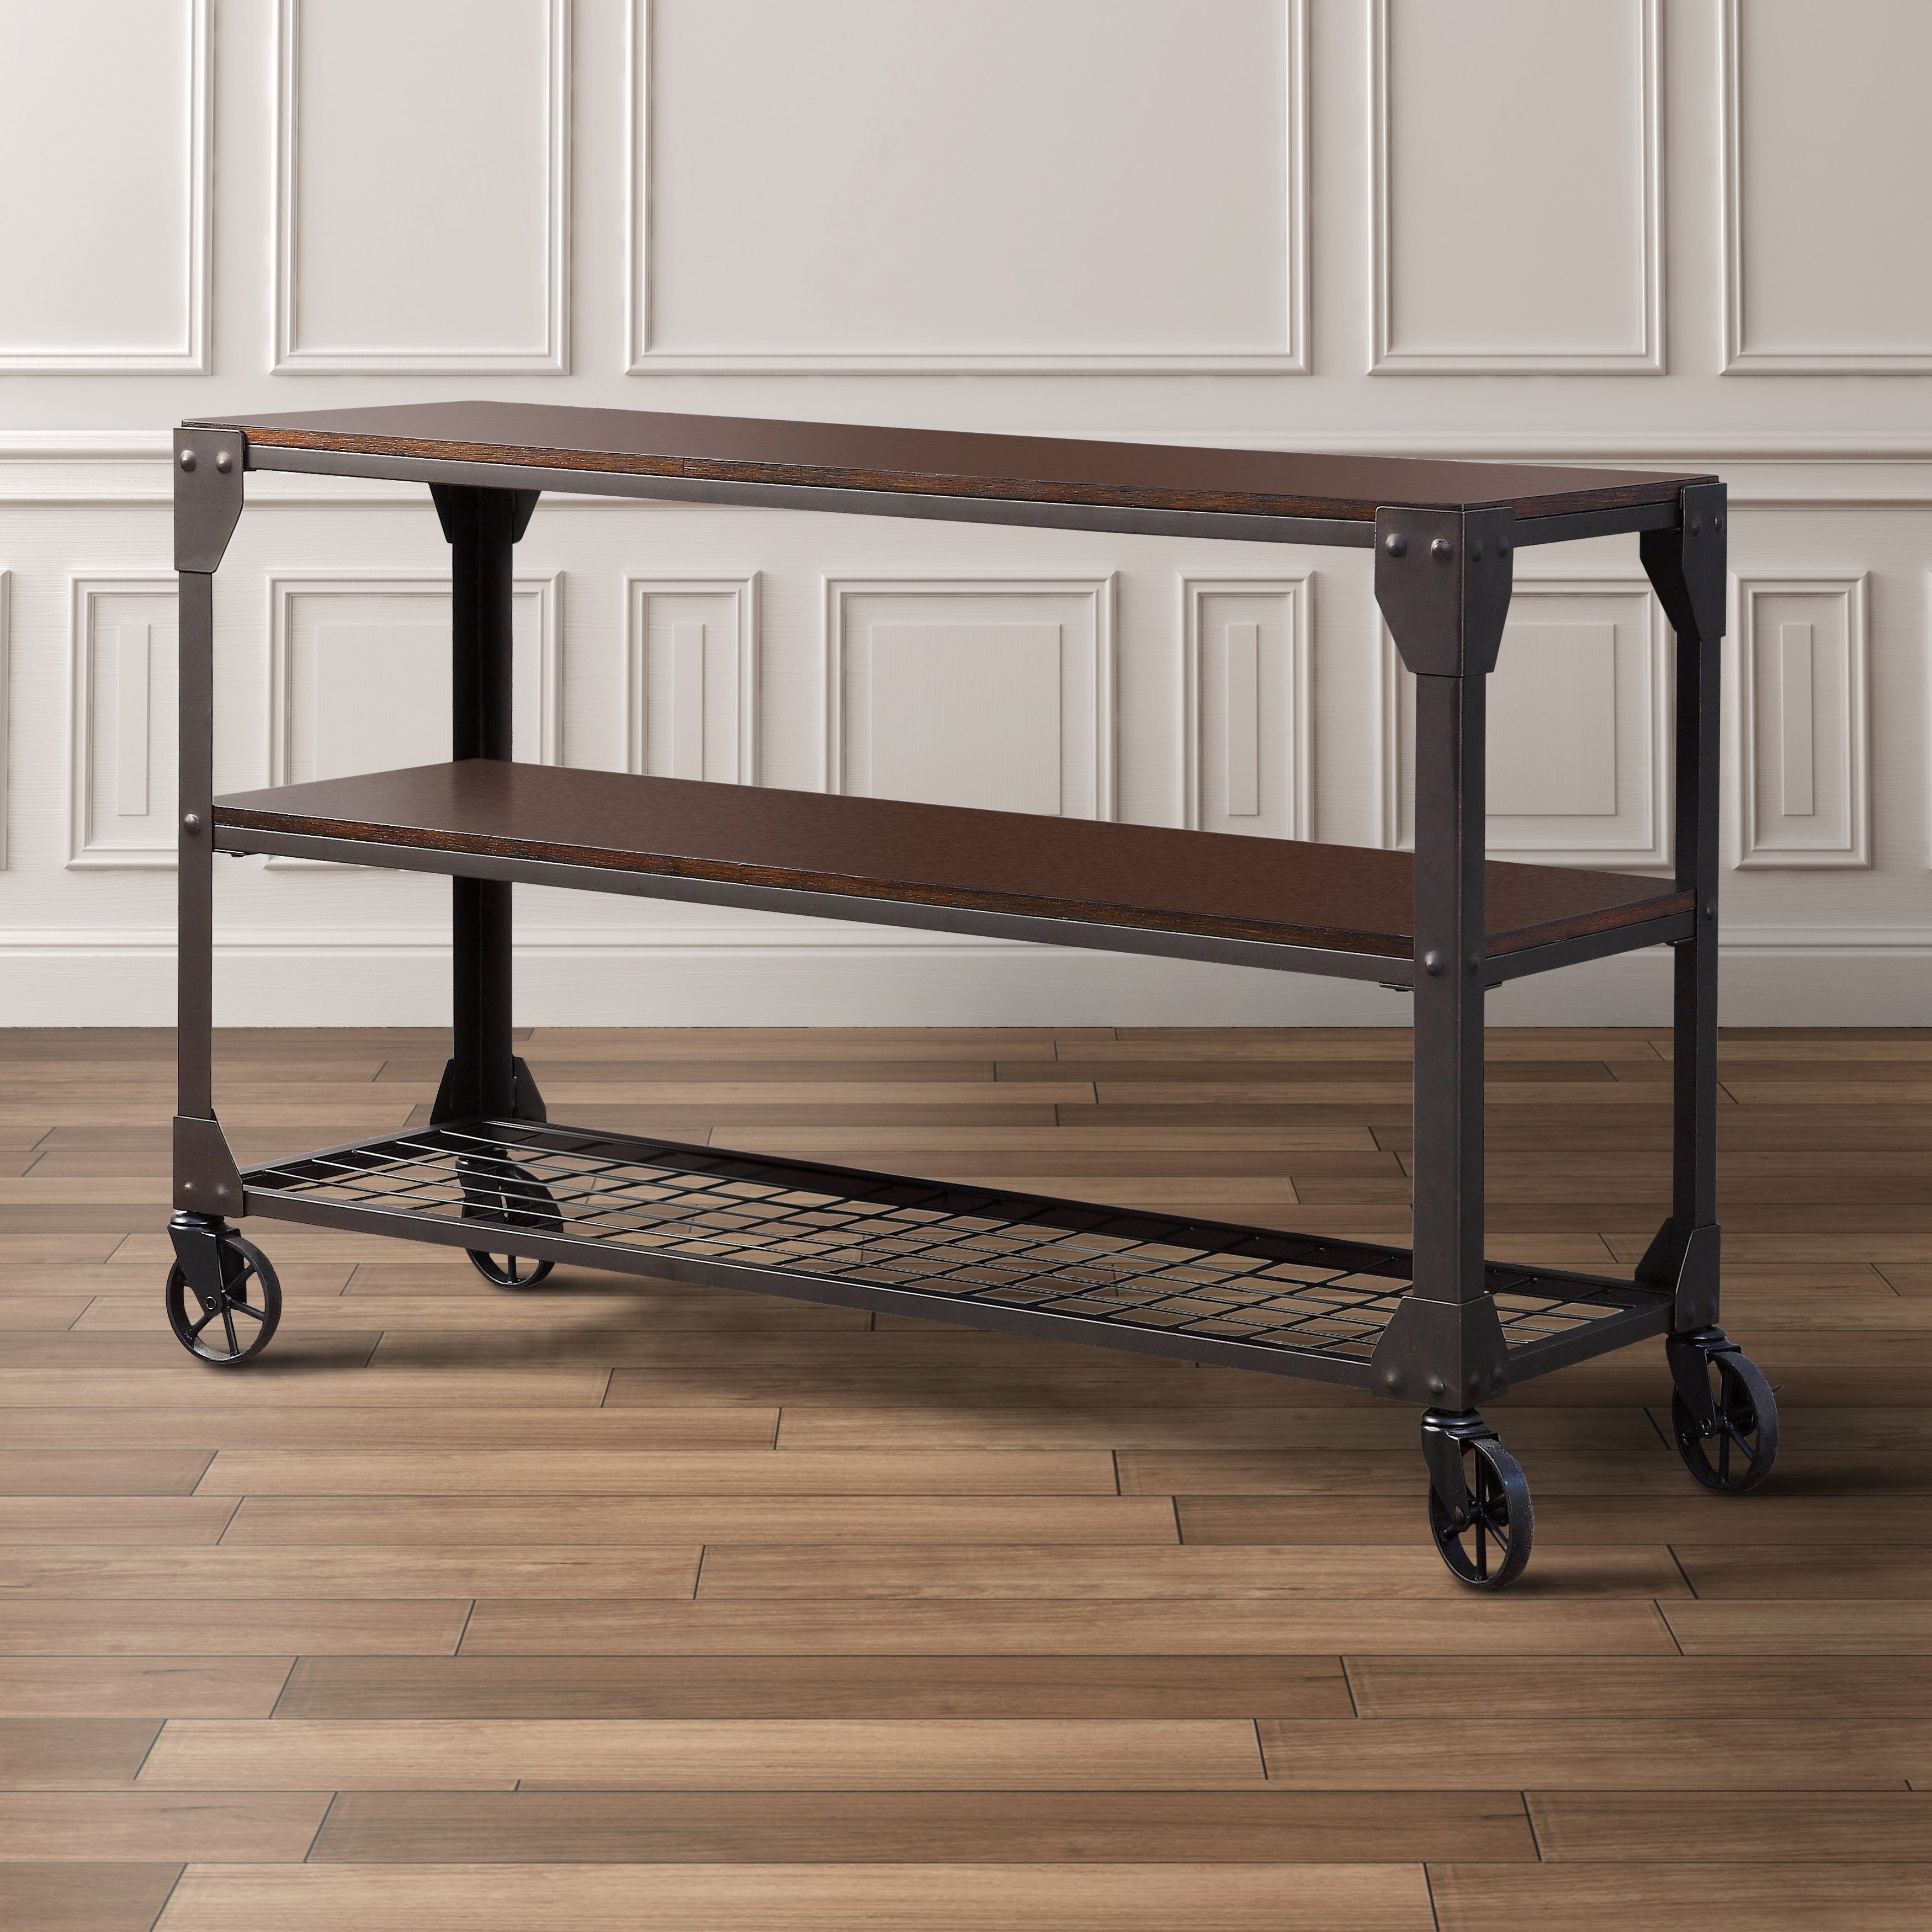 Lovely Furniture Of America Karina Industrial Style Sofa Table   Free Shipping  Today   Overstock.com   17071954